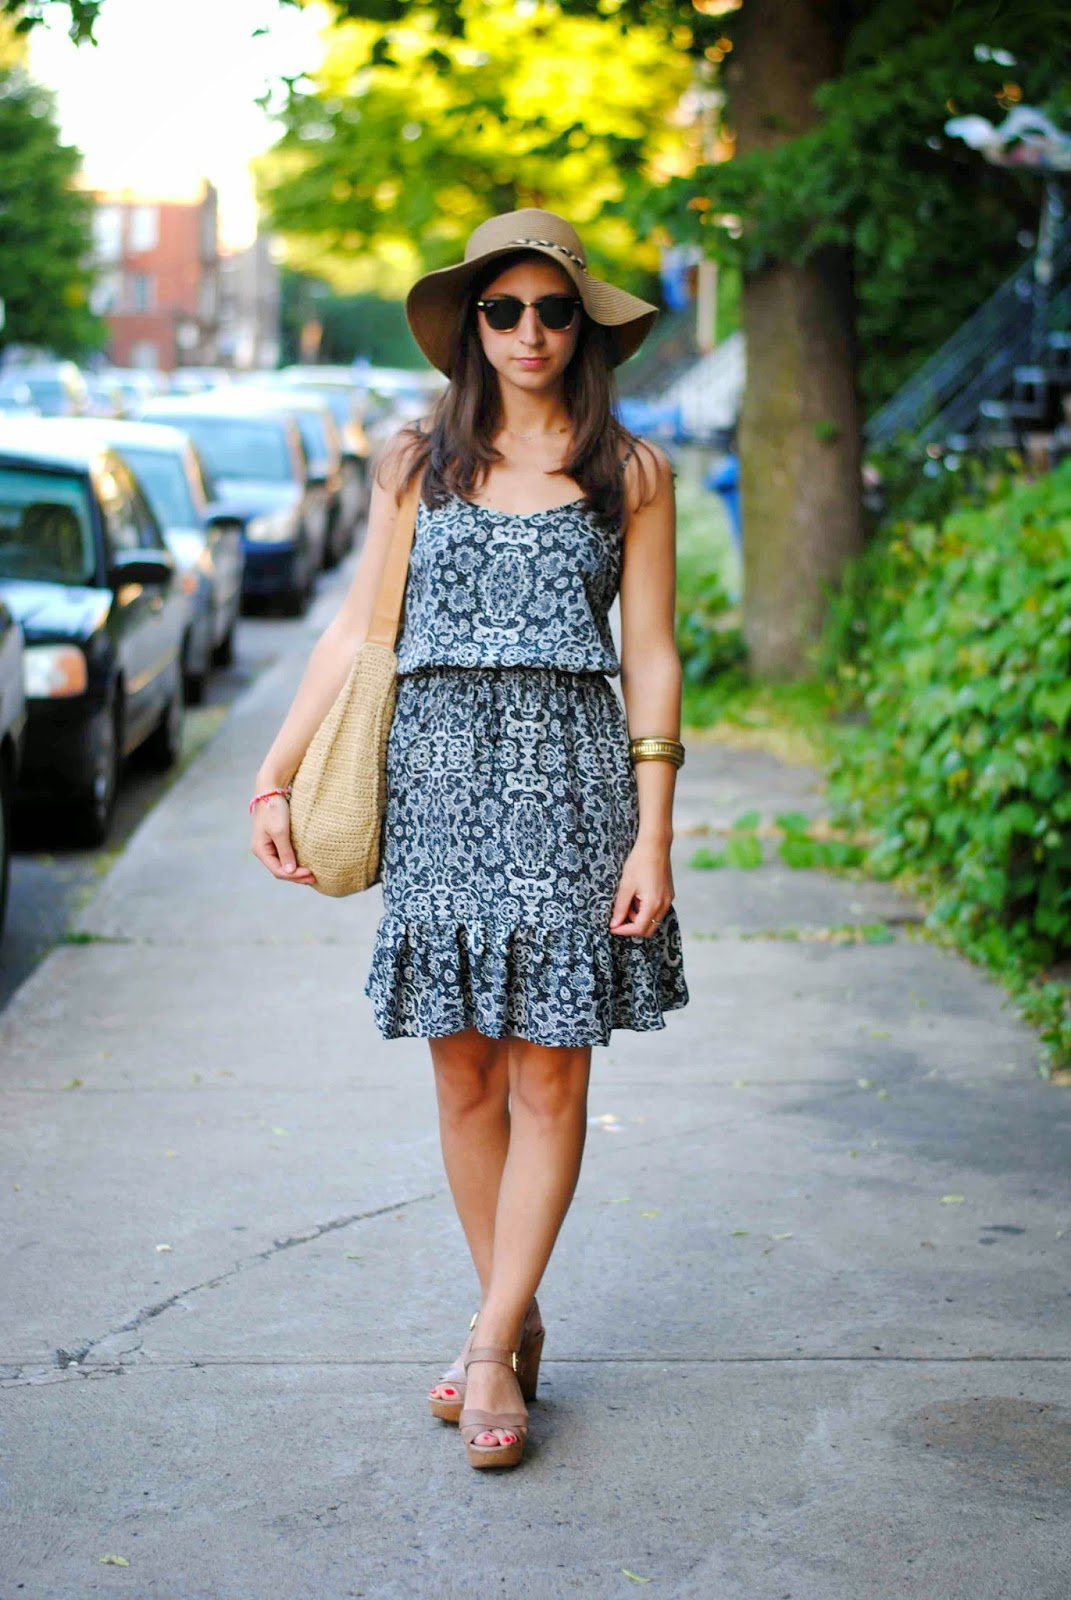 joe fresh summer dress fashion floppy hat wedge sandals